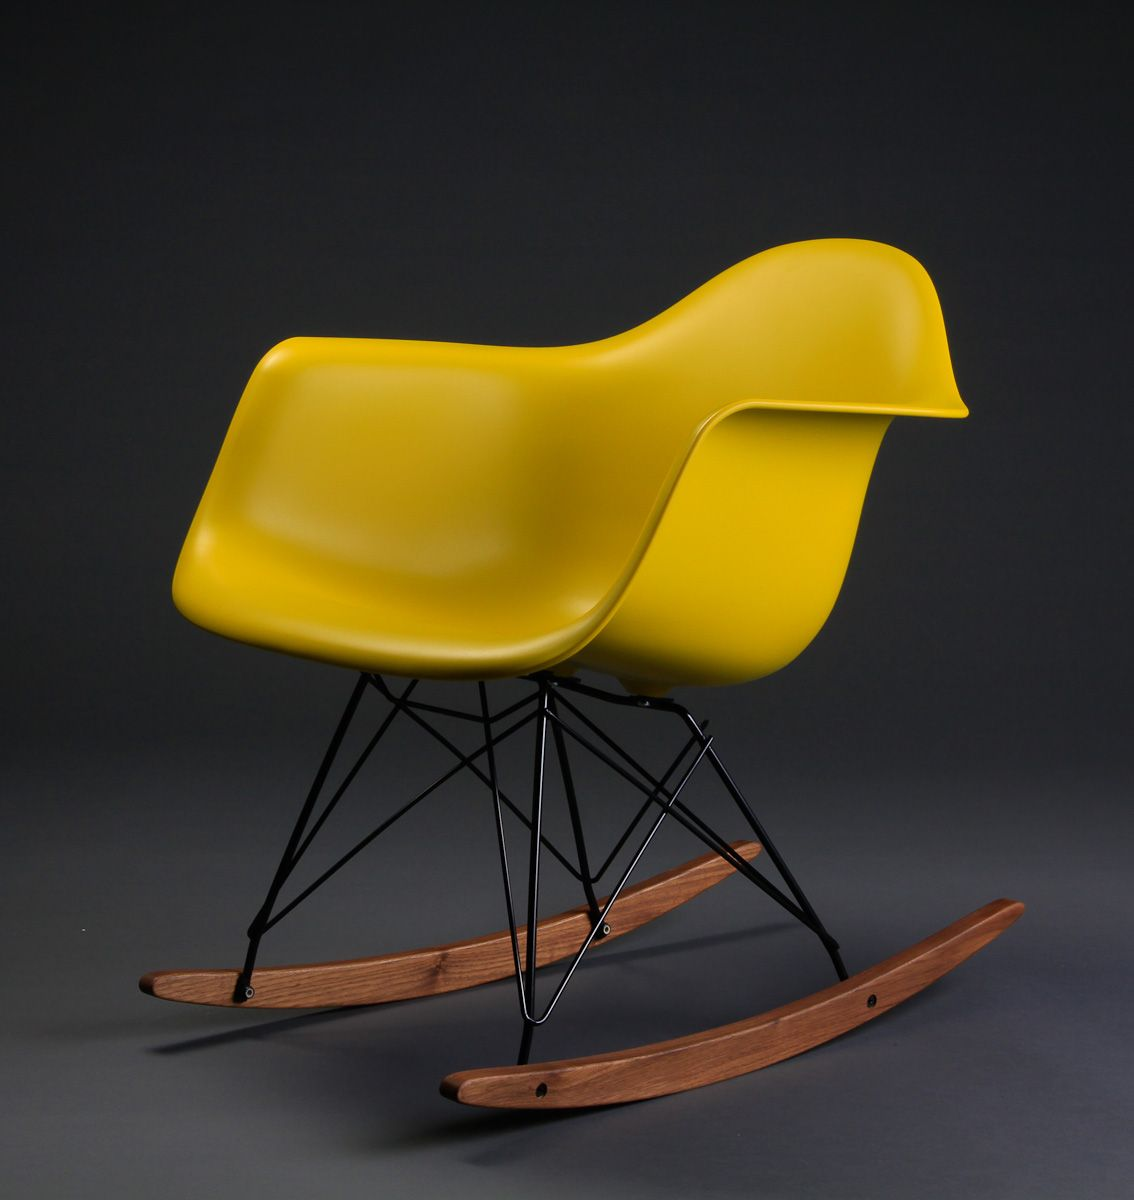 Charles eames rocking chair rar by vitra furnishings - Rocking chair vitra ...